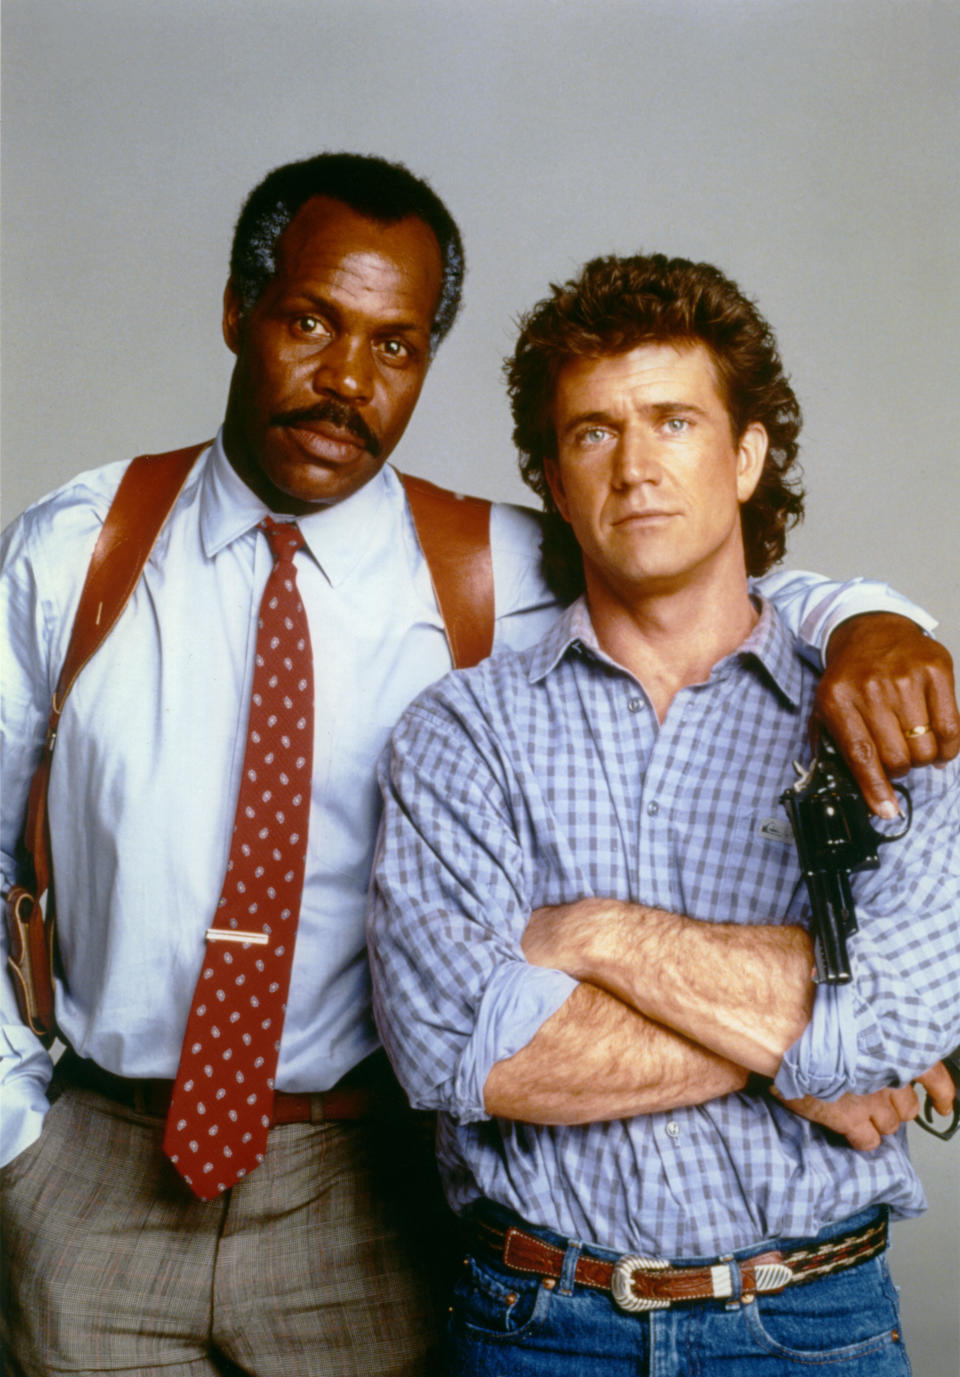 American actor Danny Glover and Australian-American actor Mel Gibson on the set of Lethal Weapon directed by Richard Donner. (Photo by Sunset Boulevard/Corbis via Getty Images)